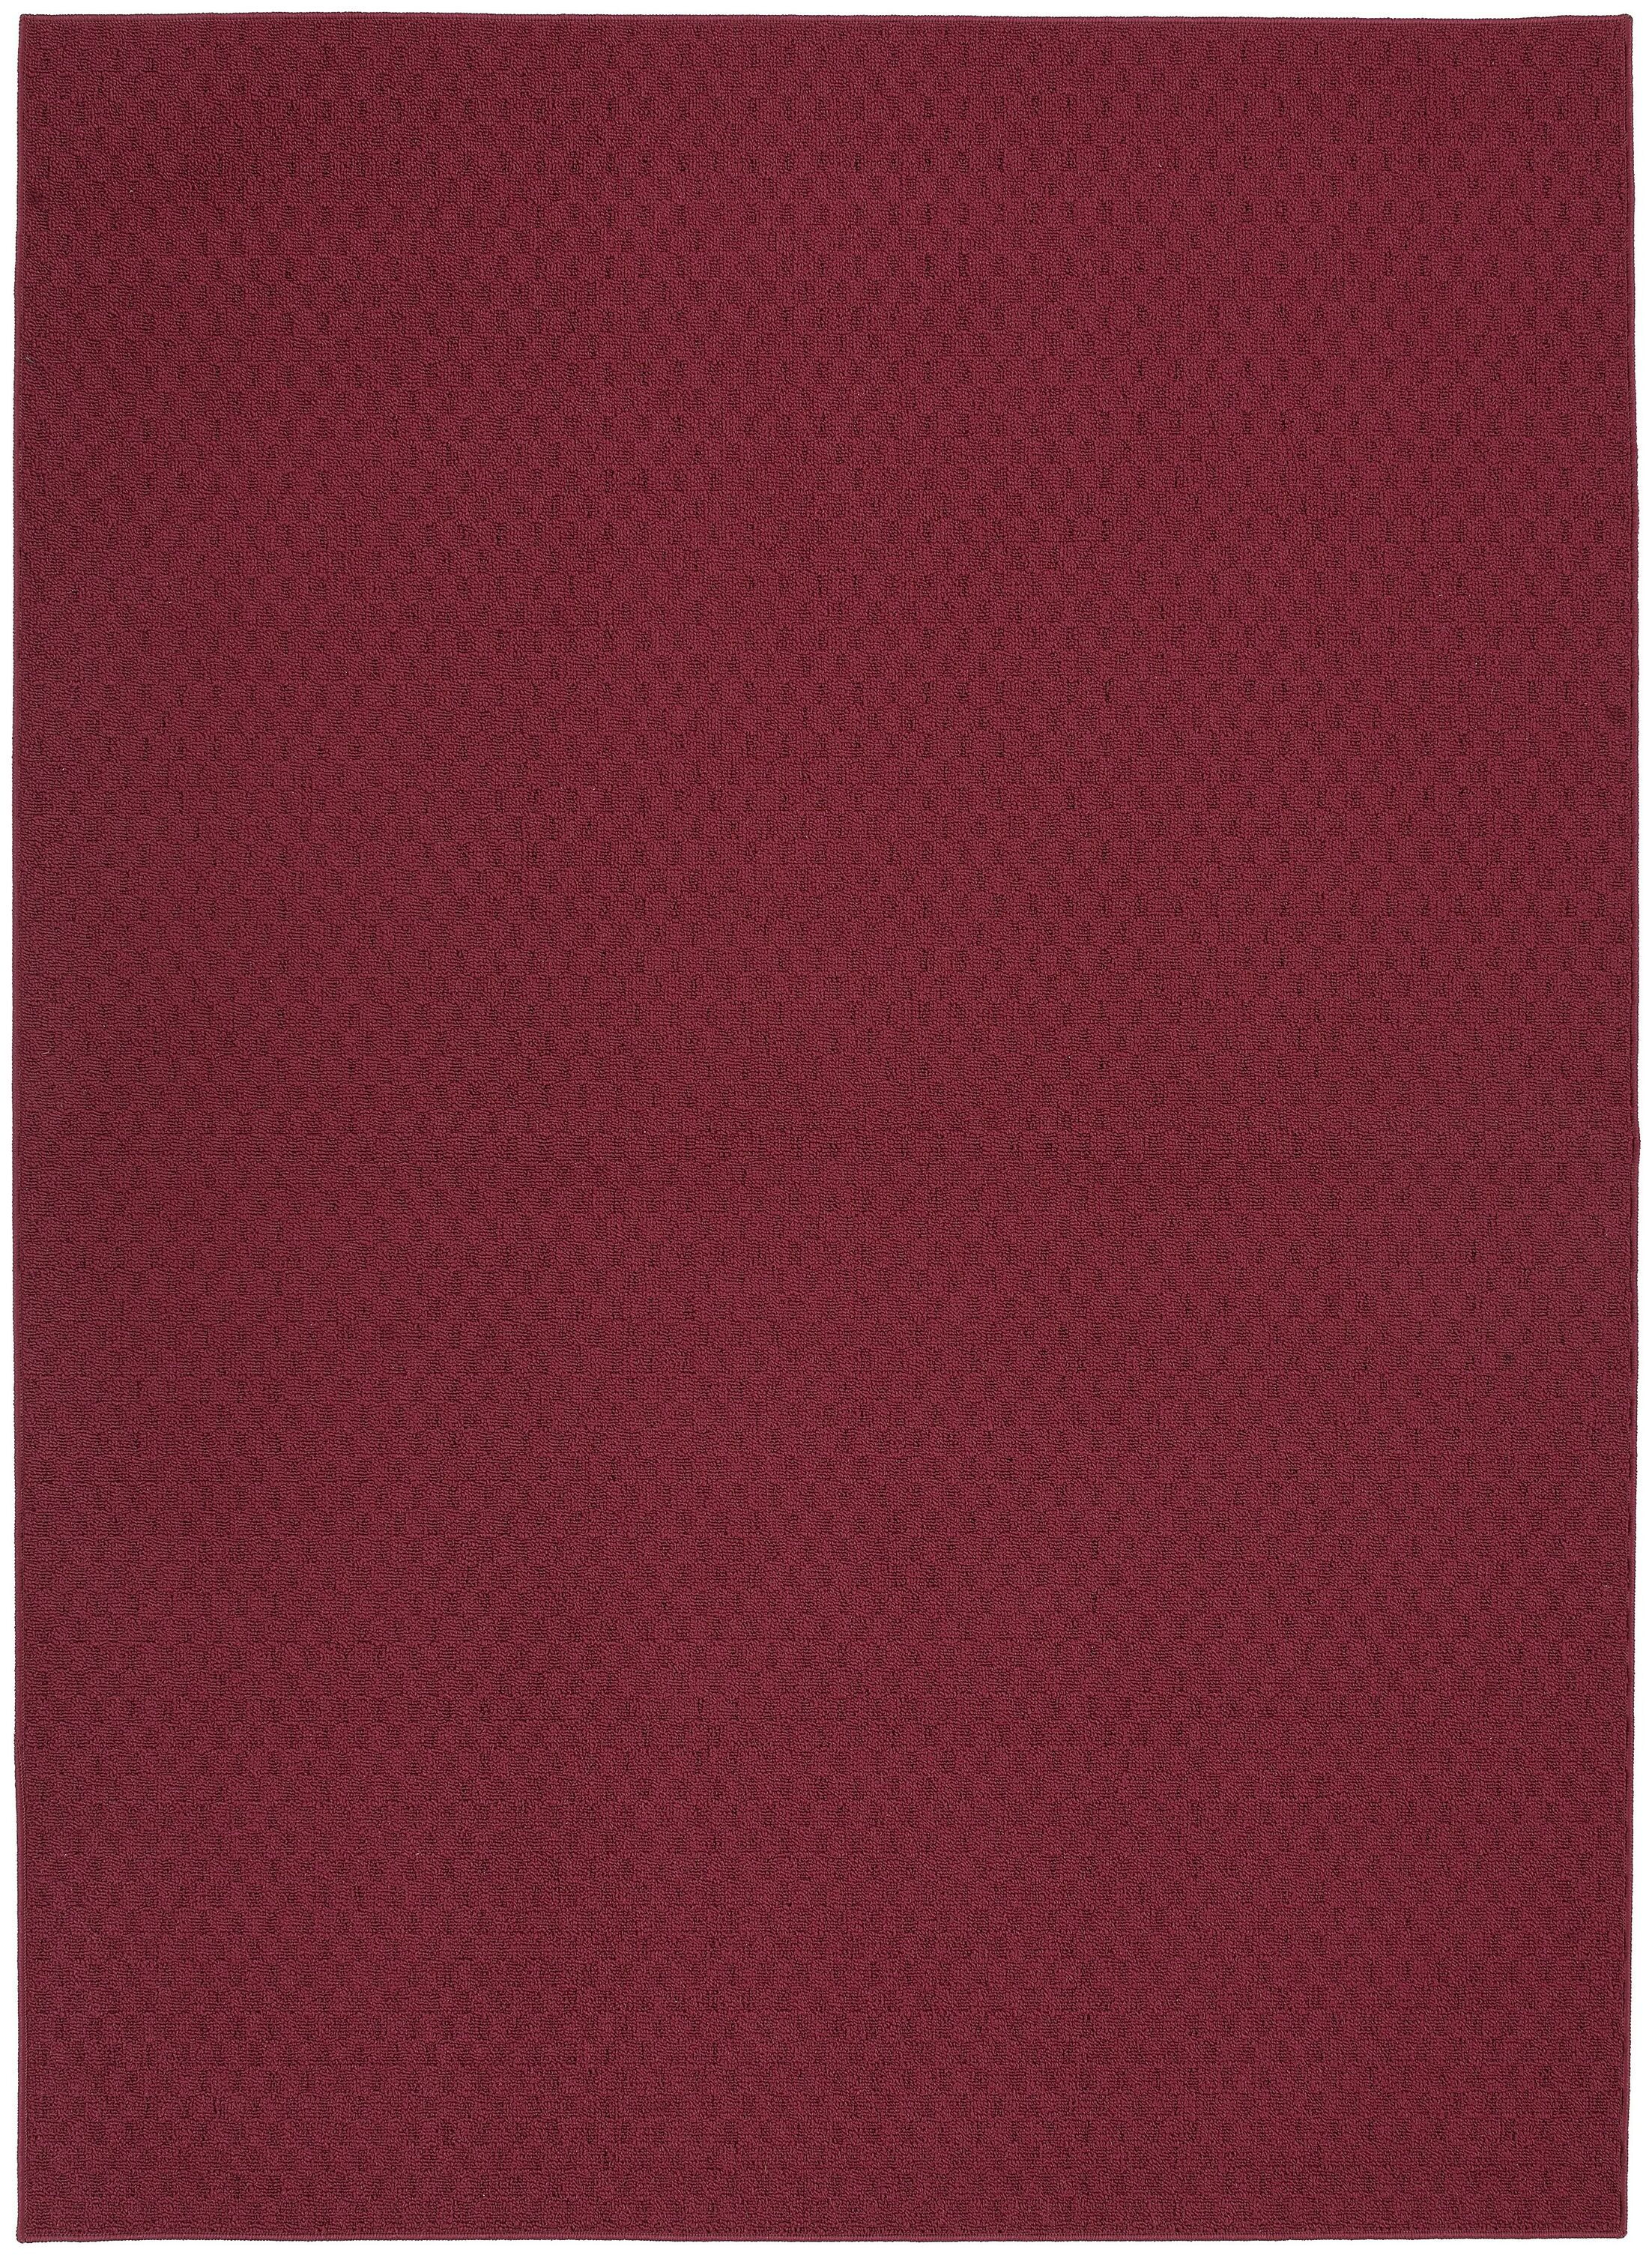 Chili Red Town Square Area Rug Rug Size: 7'6